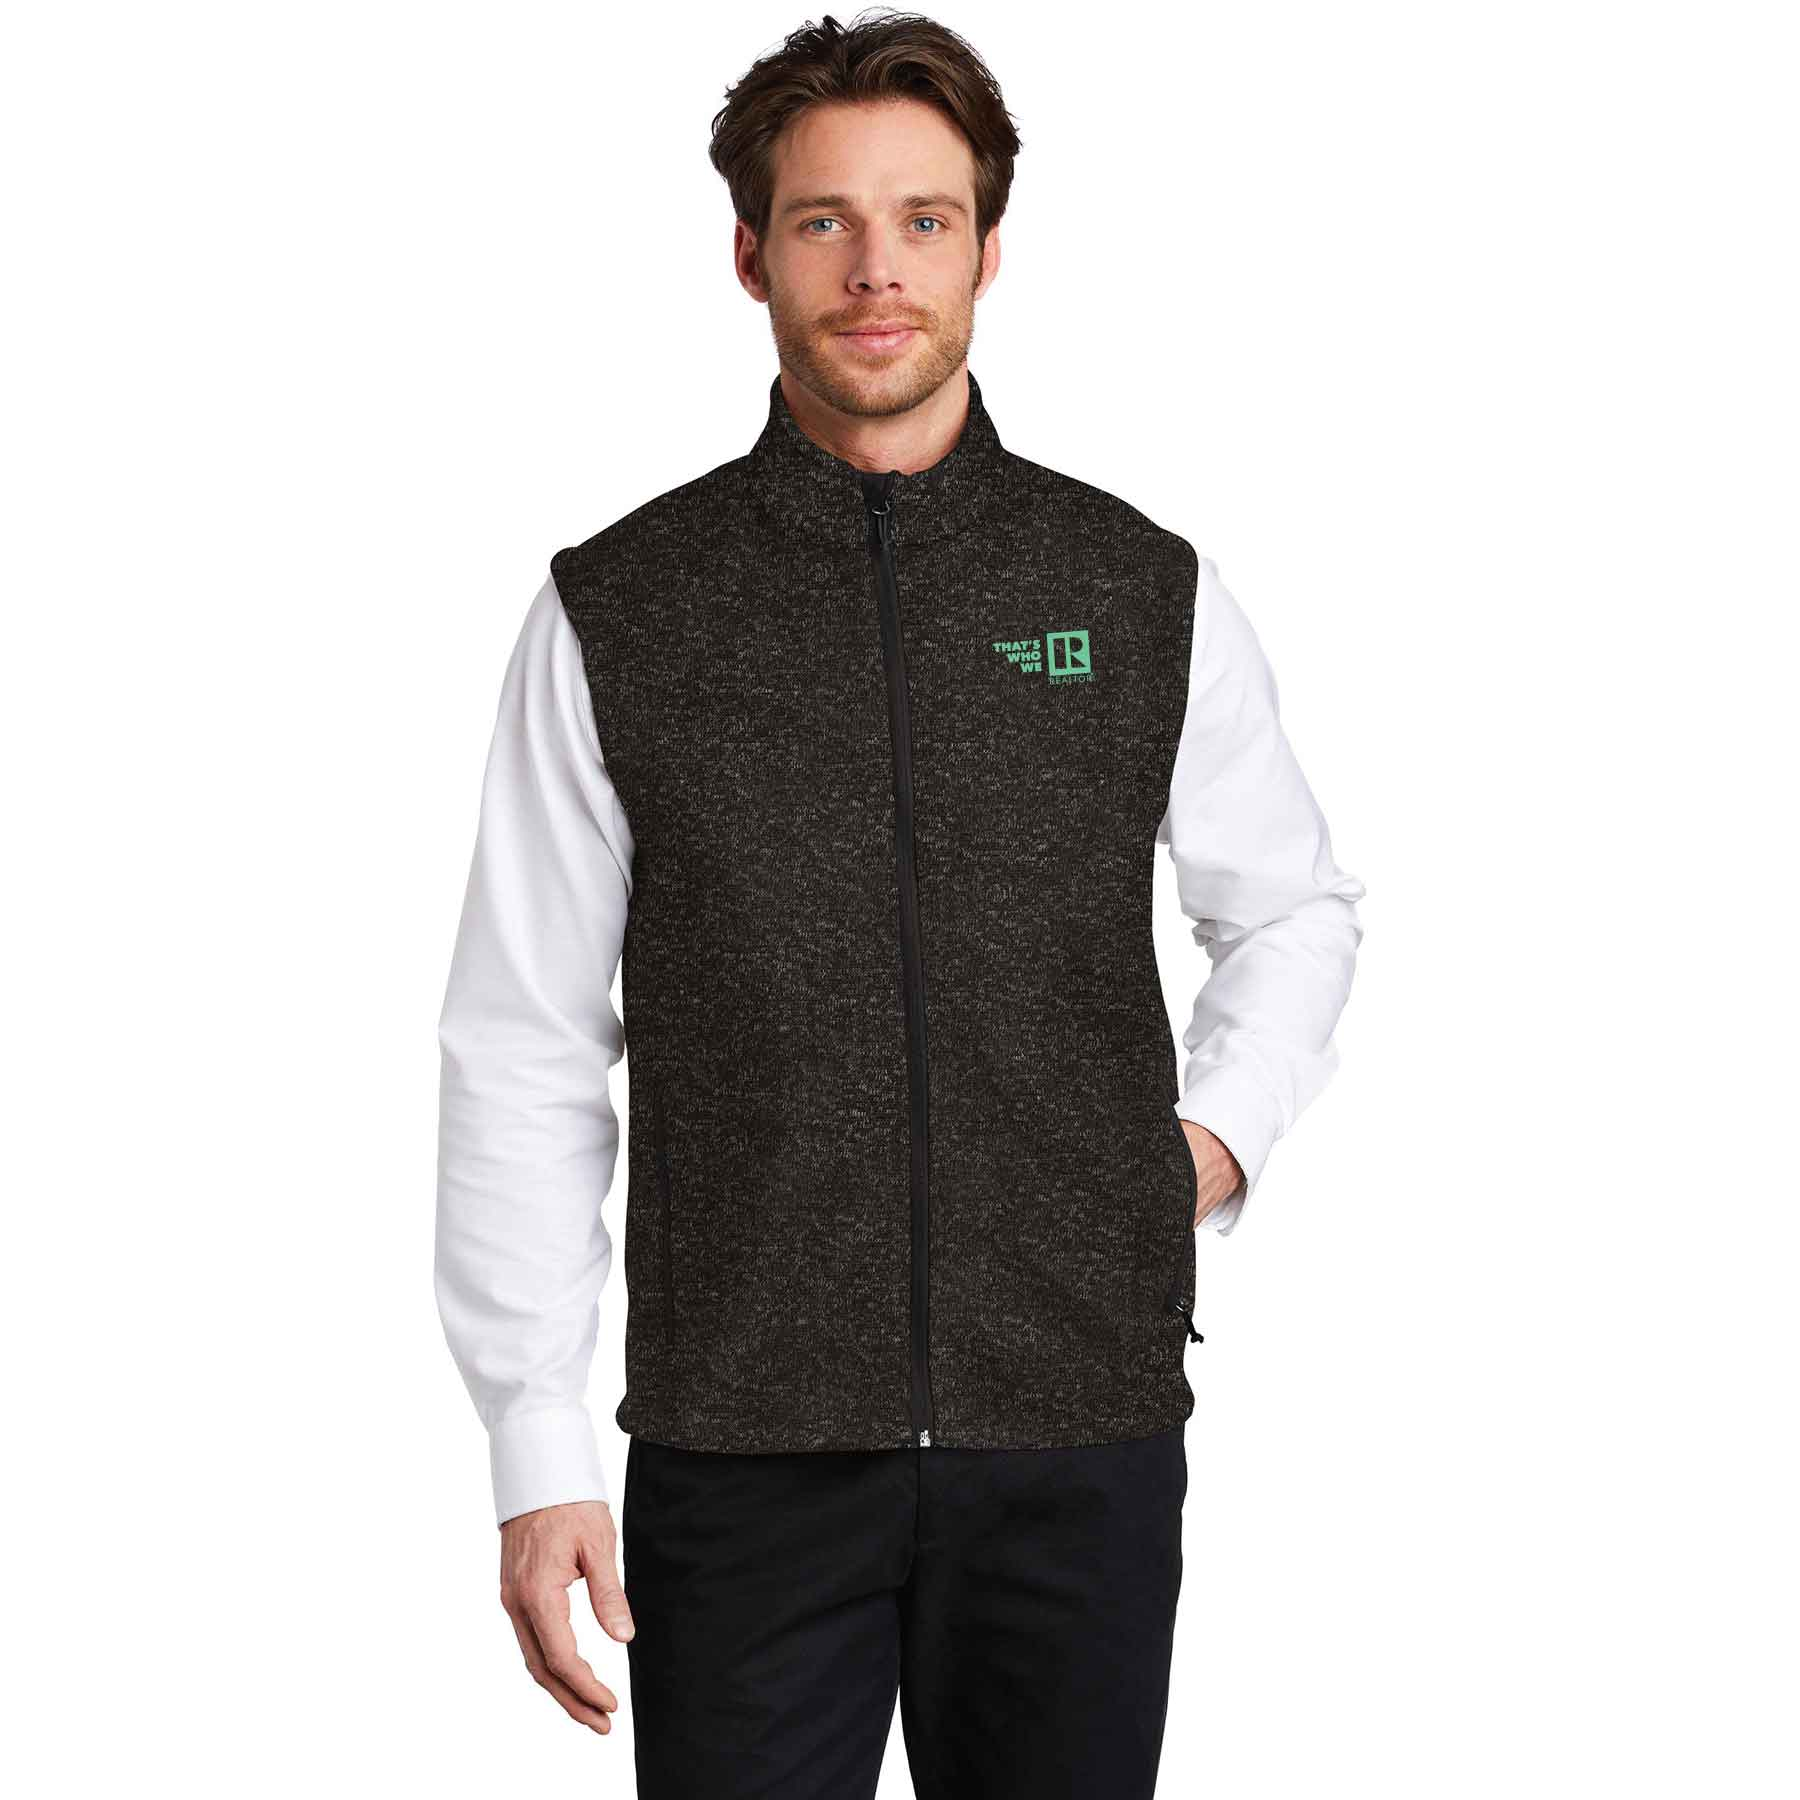 """That's Who We R"" Men's Sweater Vest - TCG4664"